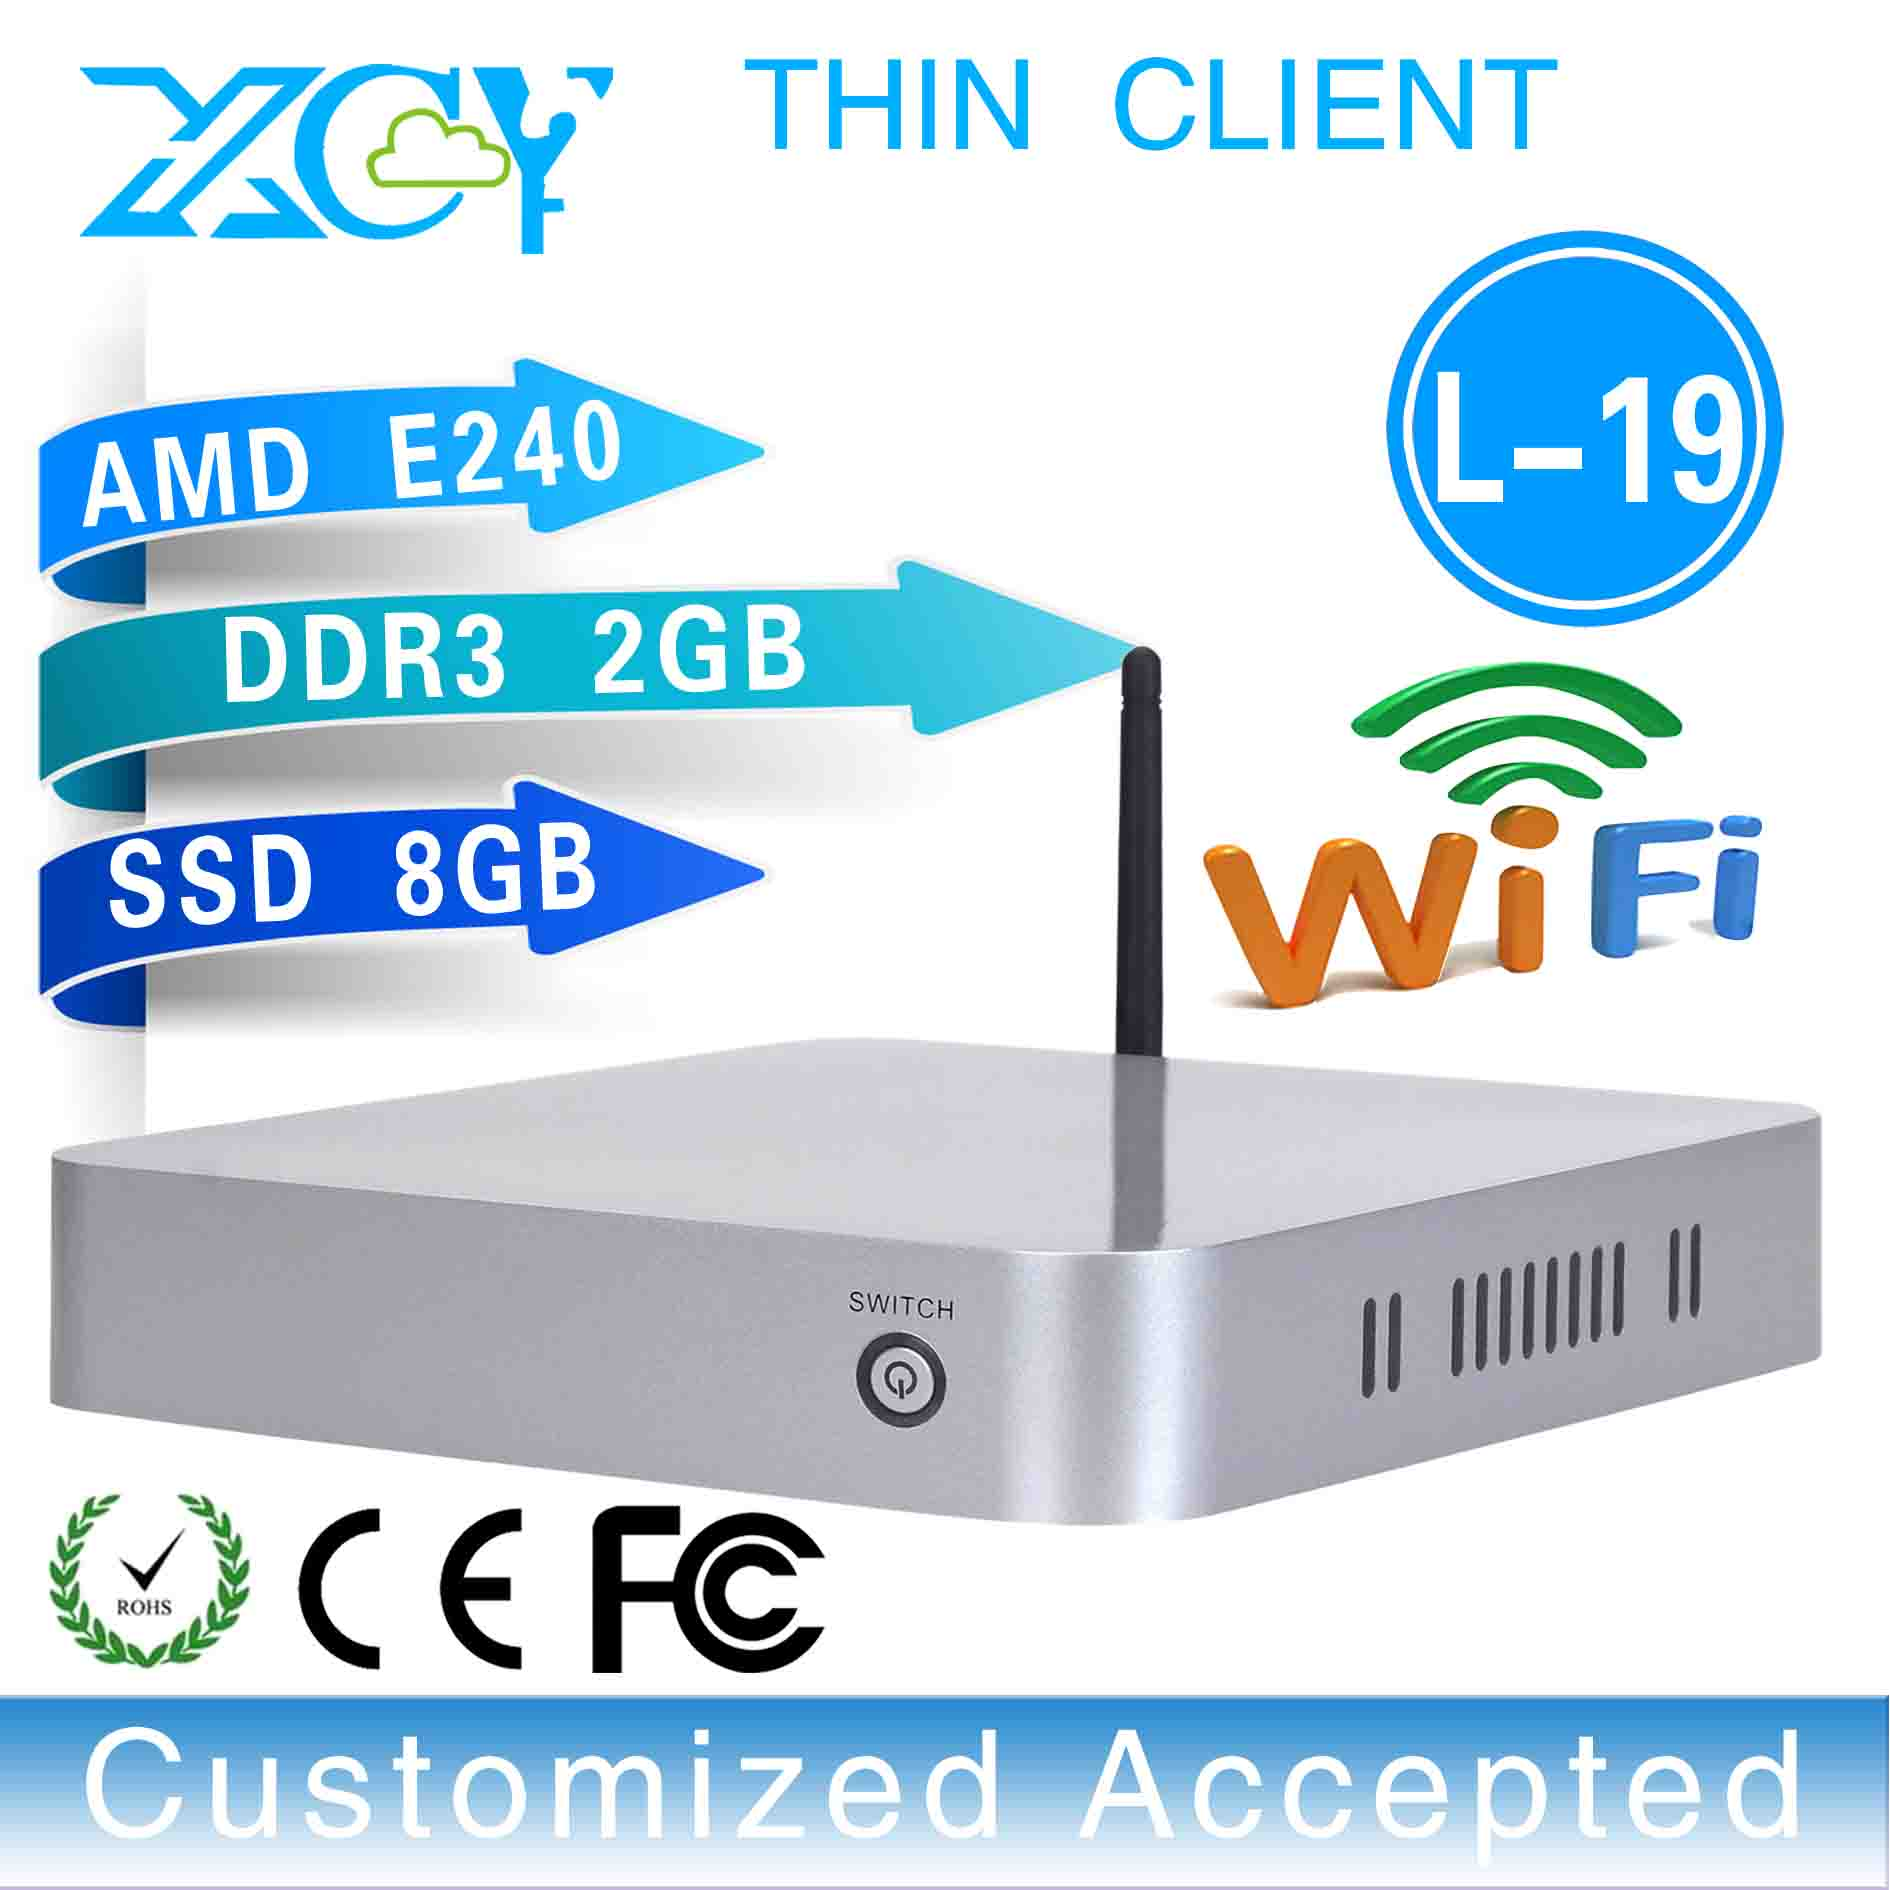 Hd media player 1080p Mainframe Computer Hd play computer L-19,support 1080p display and video.(China (Mainland))